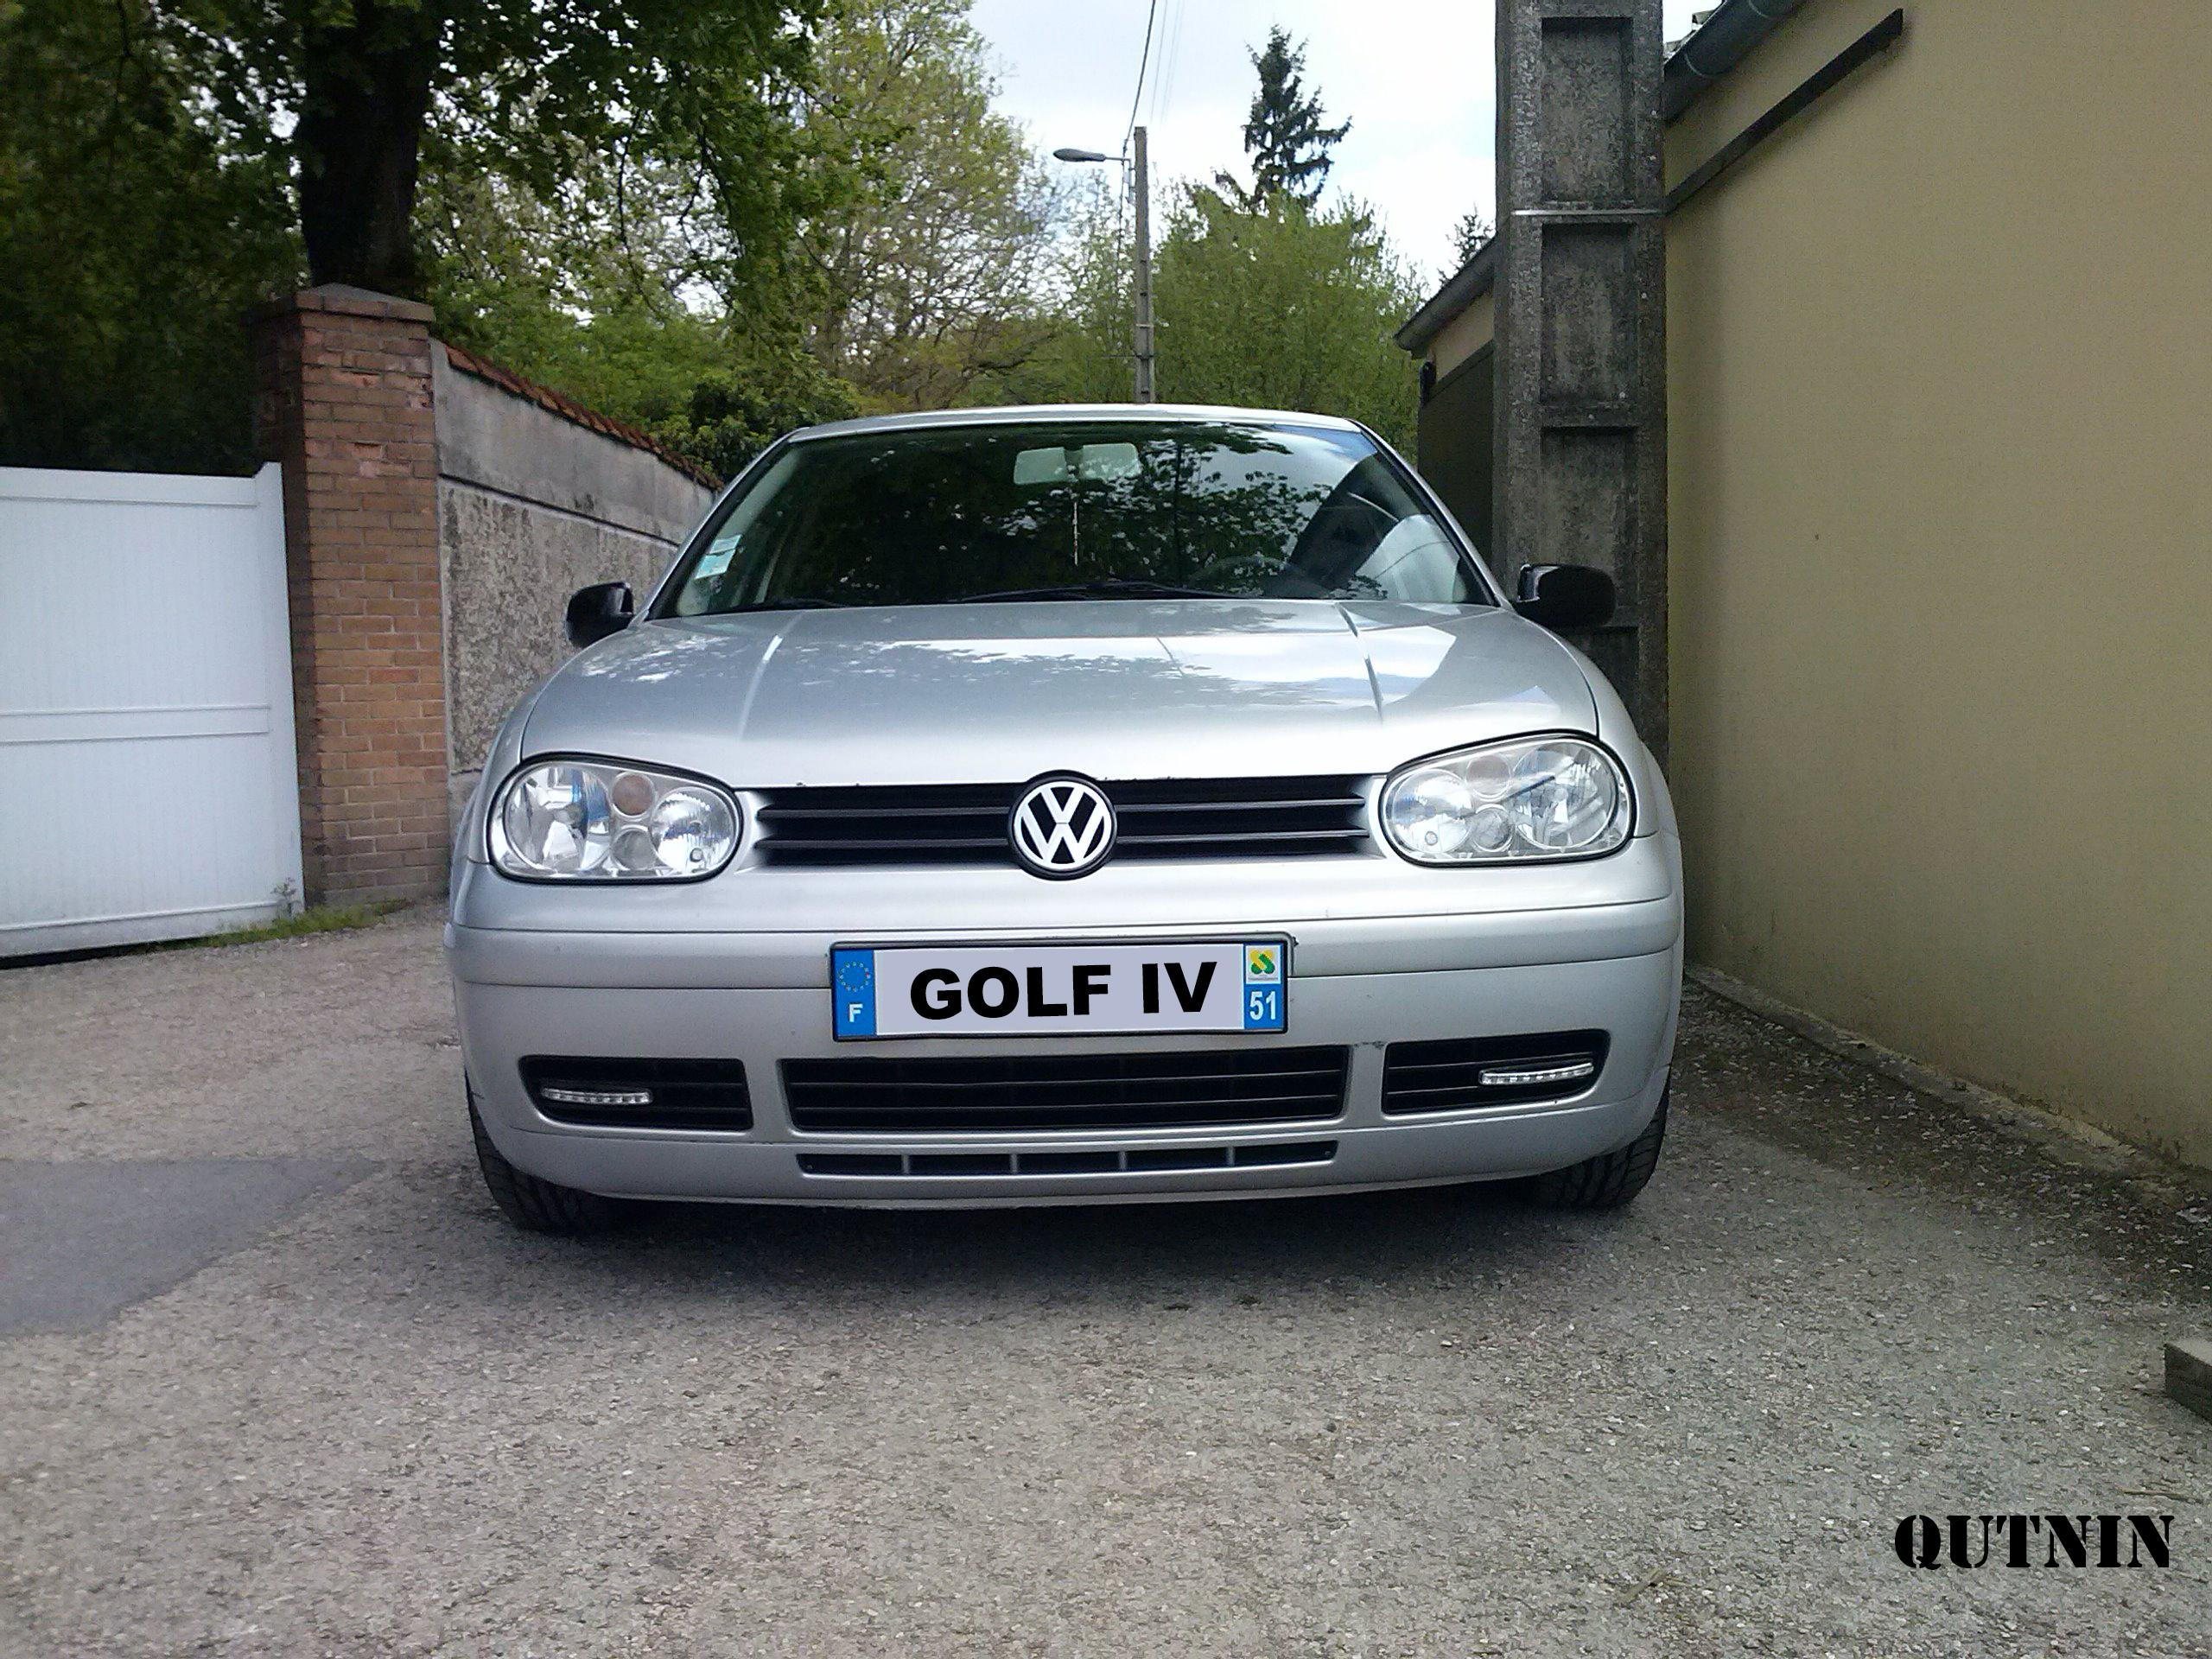 vw golf iv tdi 115 highline 2000 garage des golf iv tdi 115 forum volkswagen golf iv. Black Bedroom Furniture Sets. Home Design Ideas